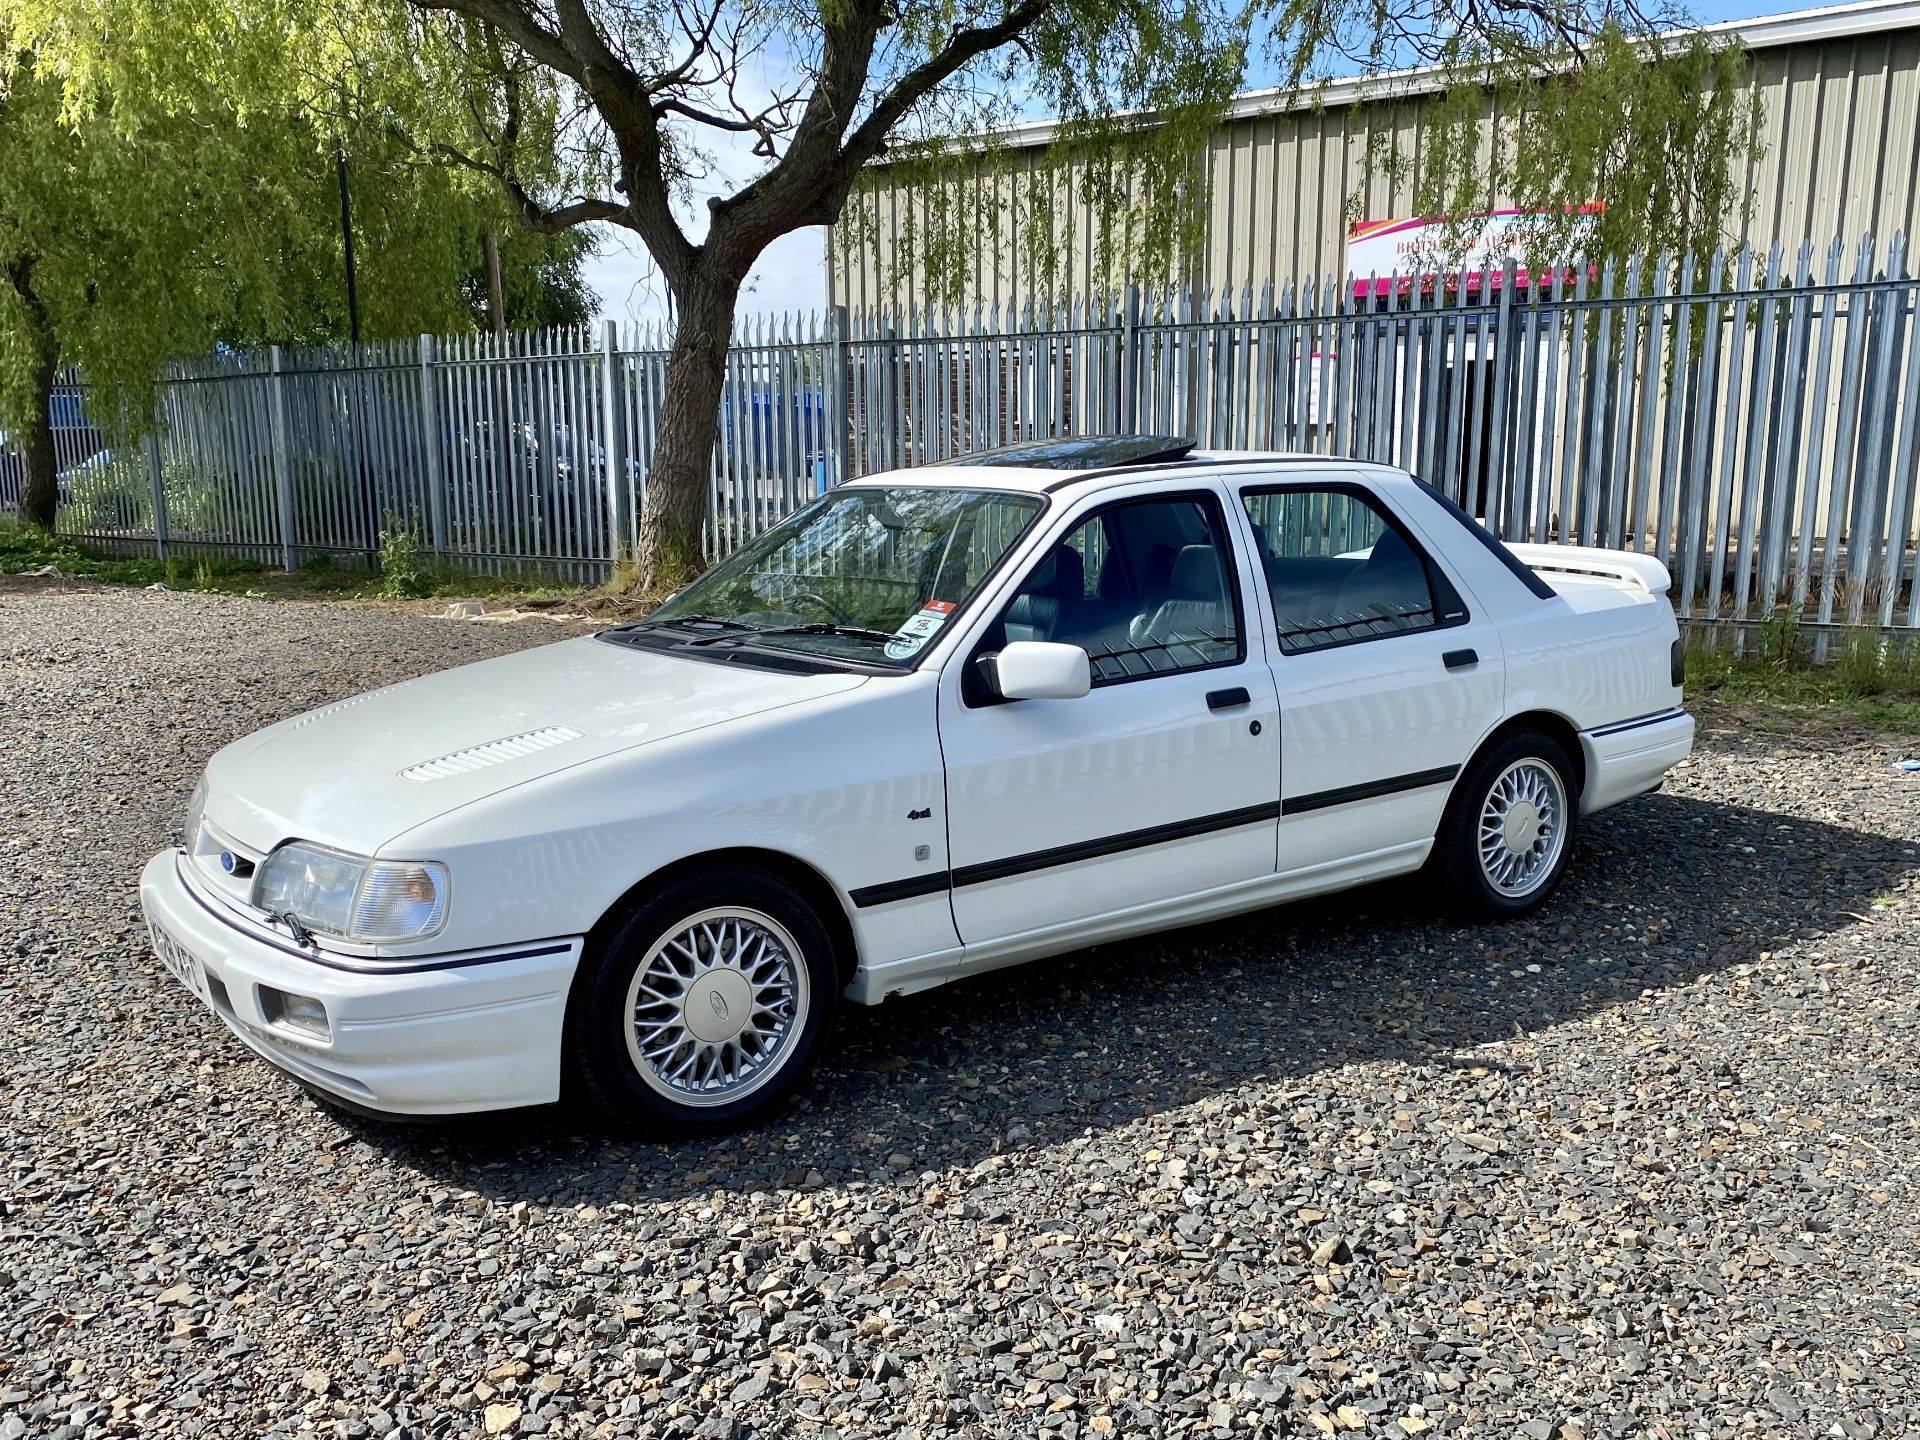 Ford Sierra Sapphire Cosworth 4x4 - Image 14 of 55